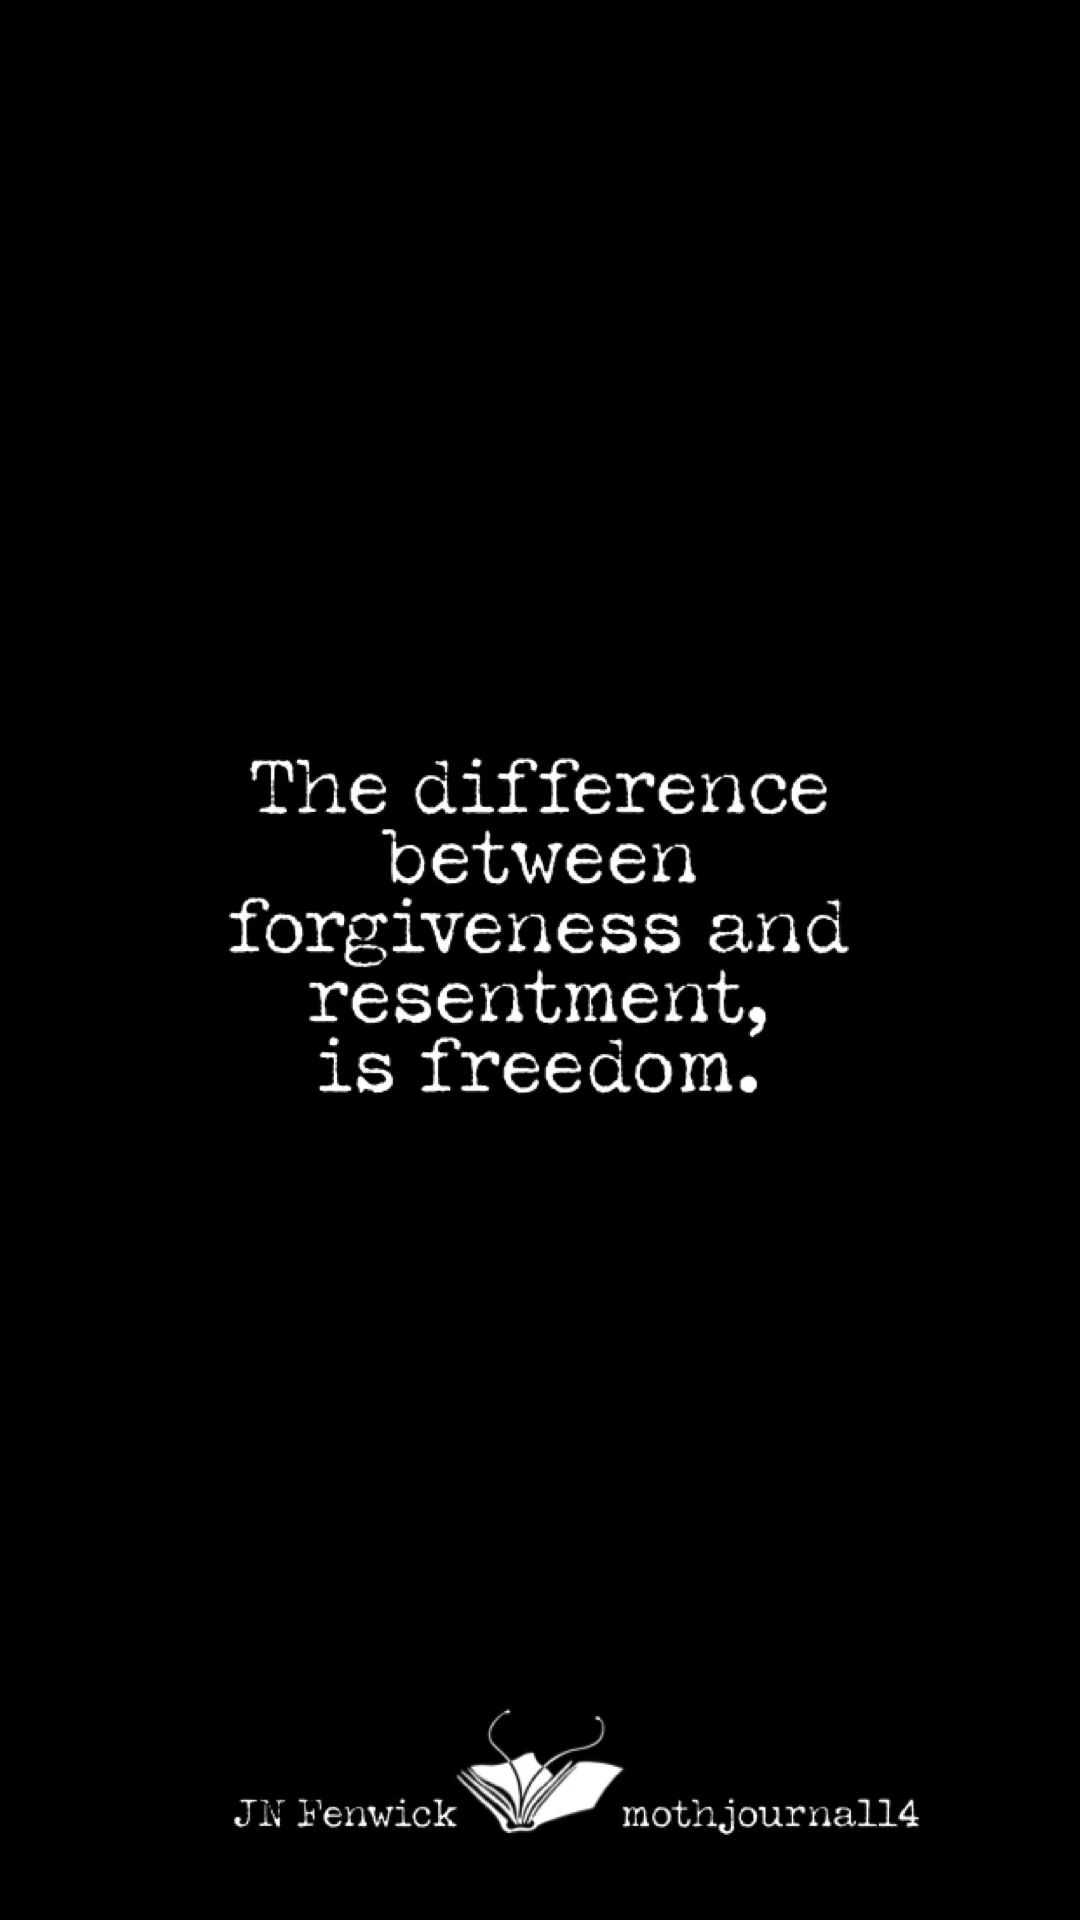 The difference between....